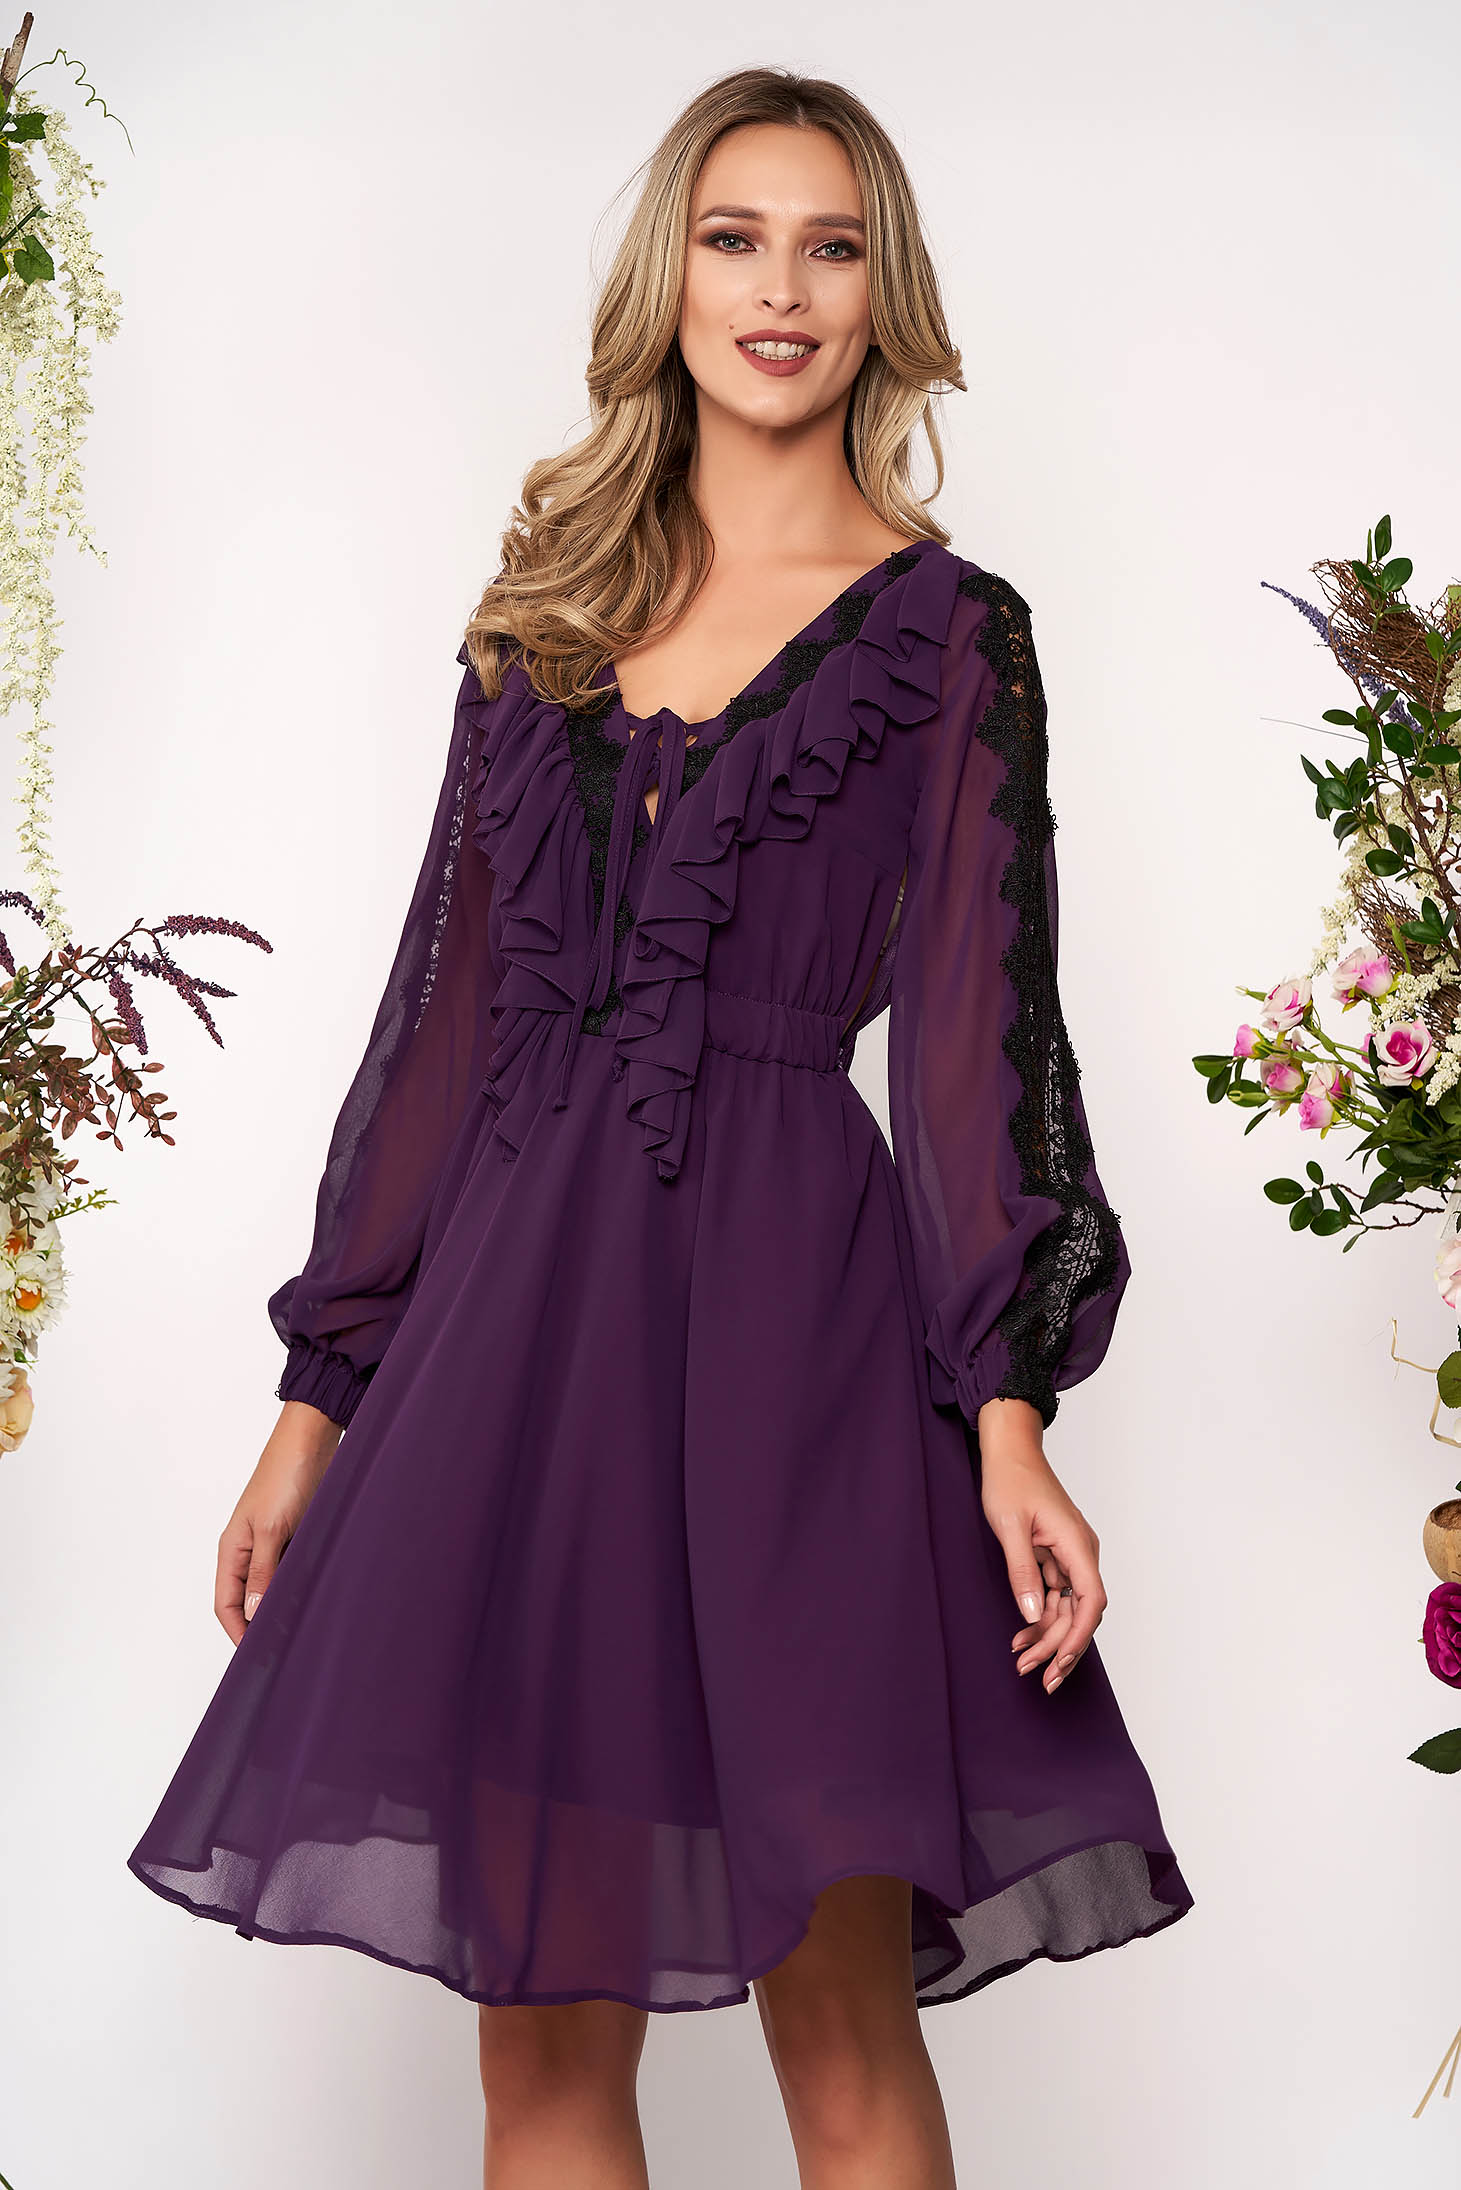 Purple elegant cloche dress with v-neckline voile fabric with lace details